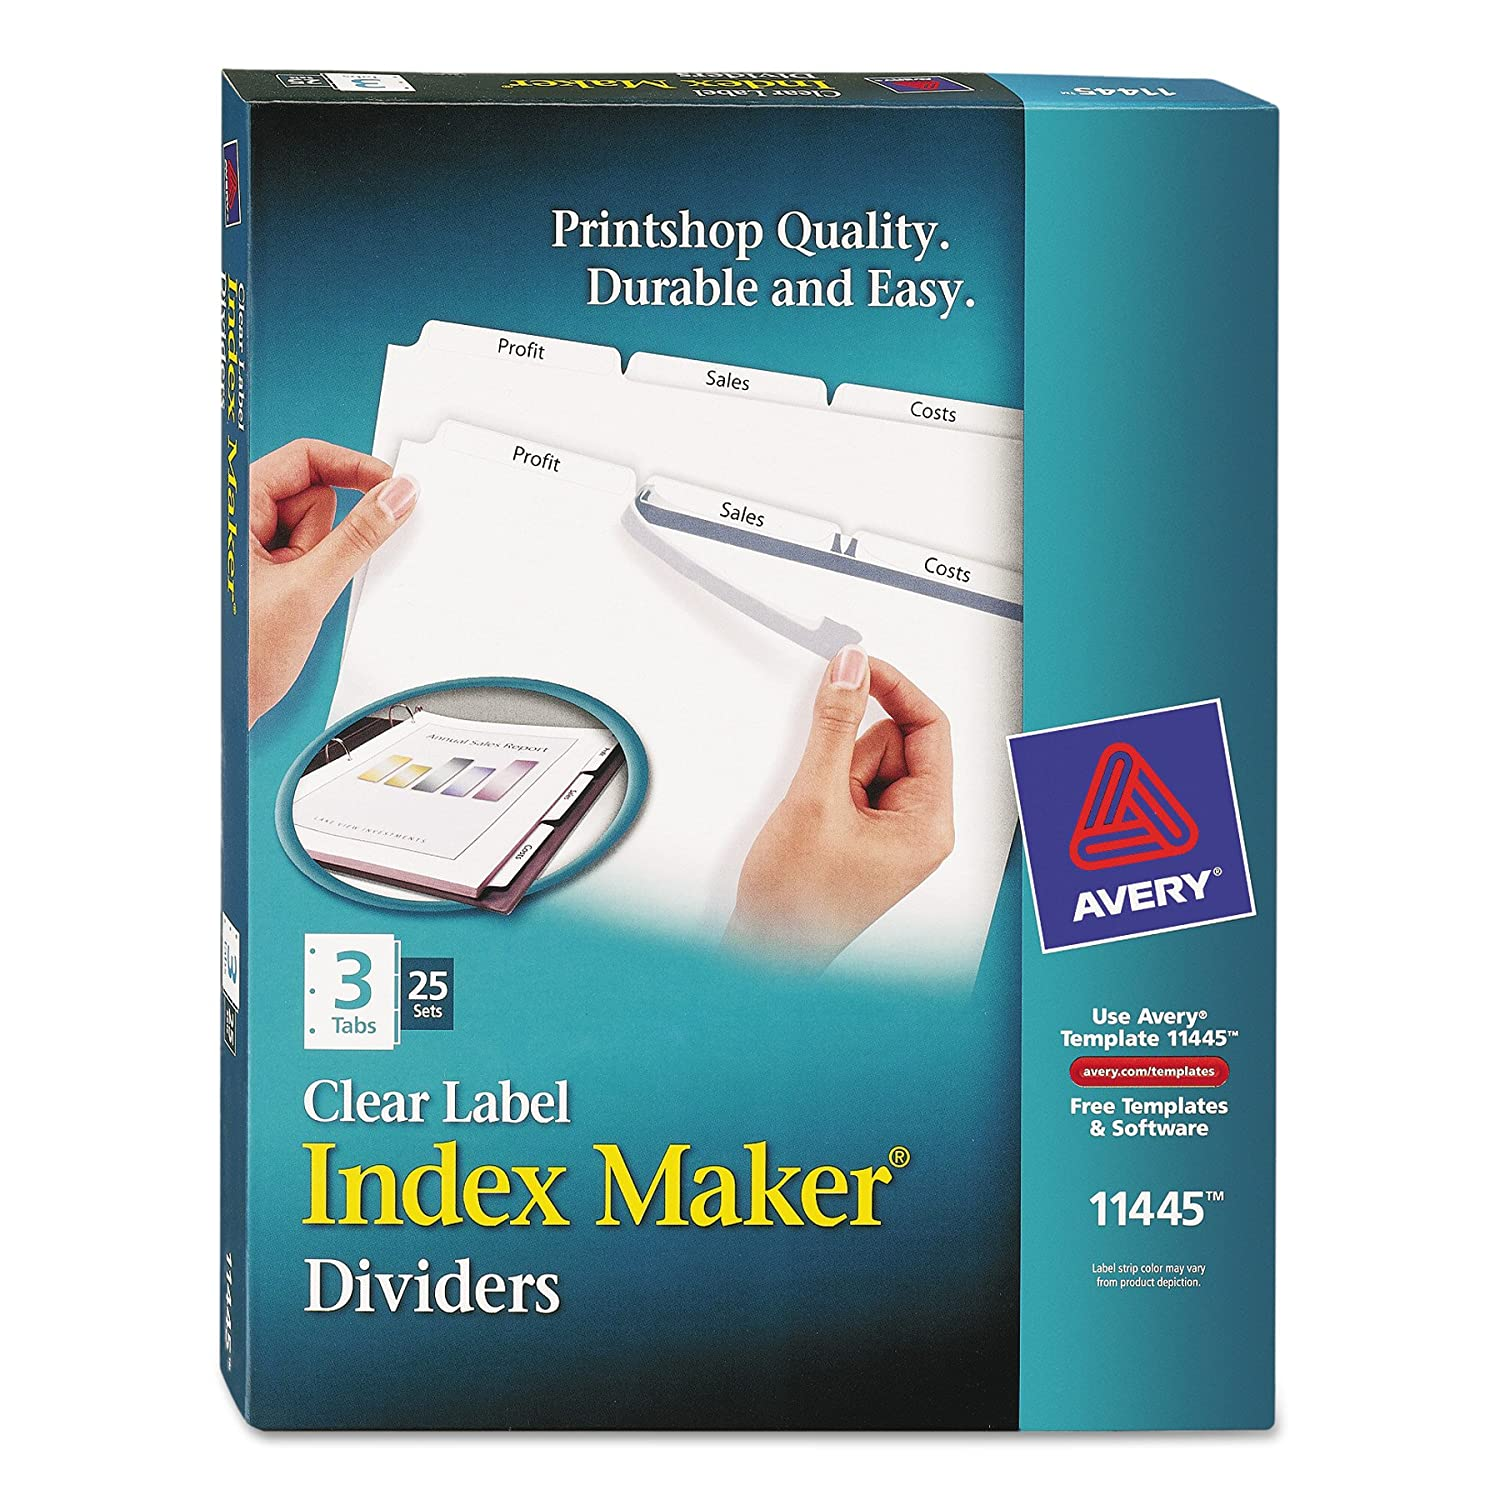 Avery Index Maker Clear Label Dividers with Easy Apply Labels for Laser and Inkjet Printers, 8 tabs, White, 5 Sets, (11437)